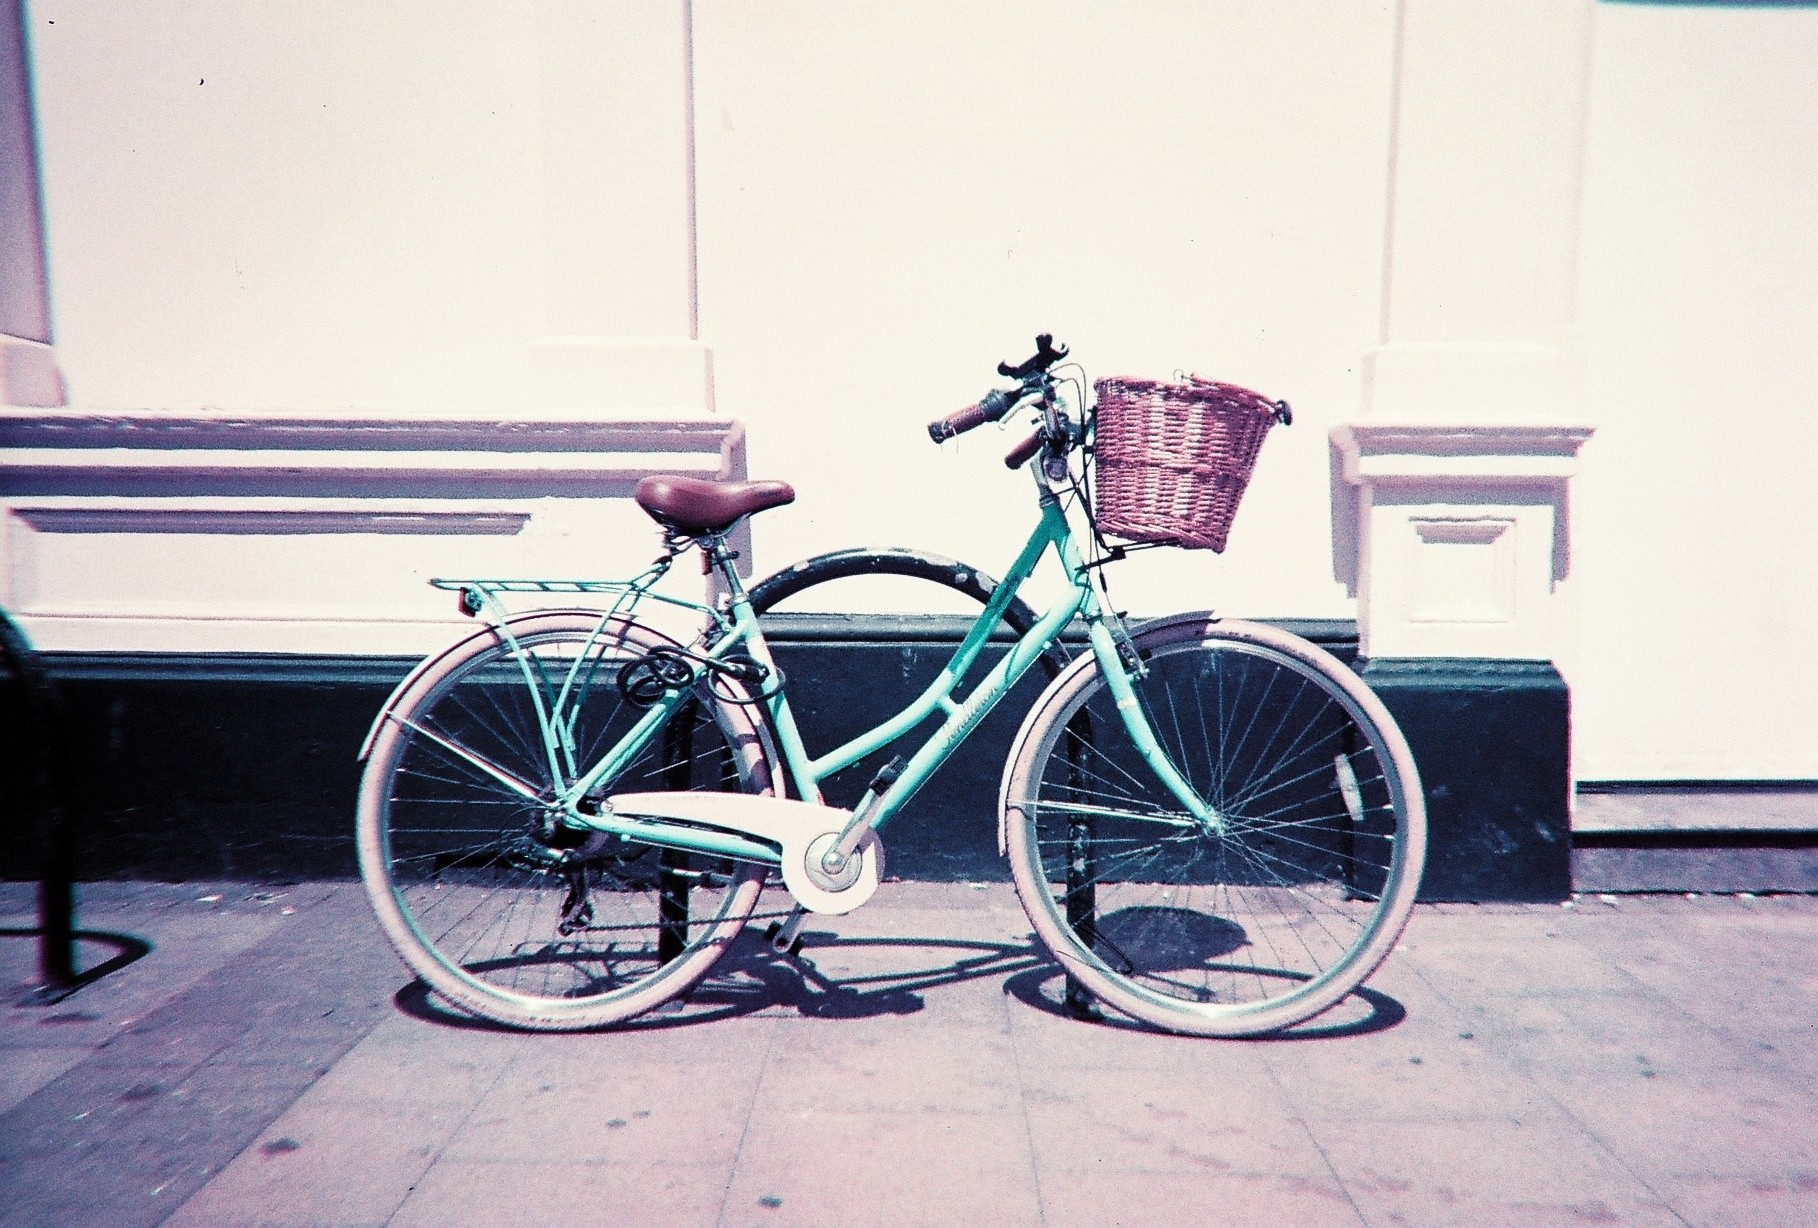 35mm Xpro Vintage Bicycle